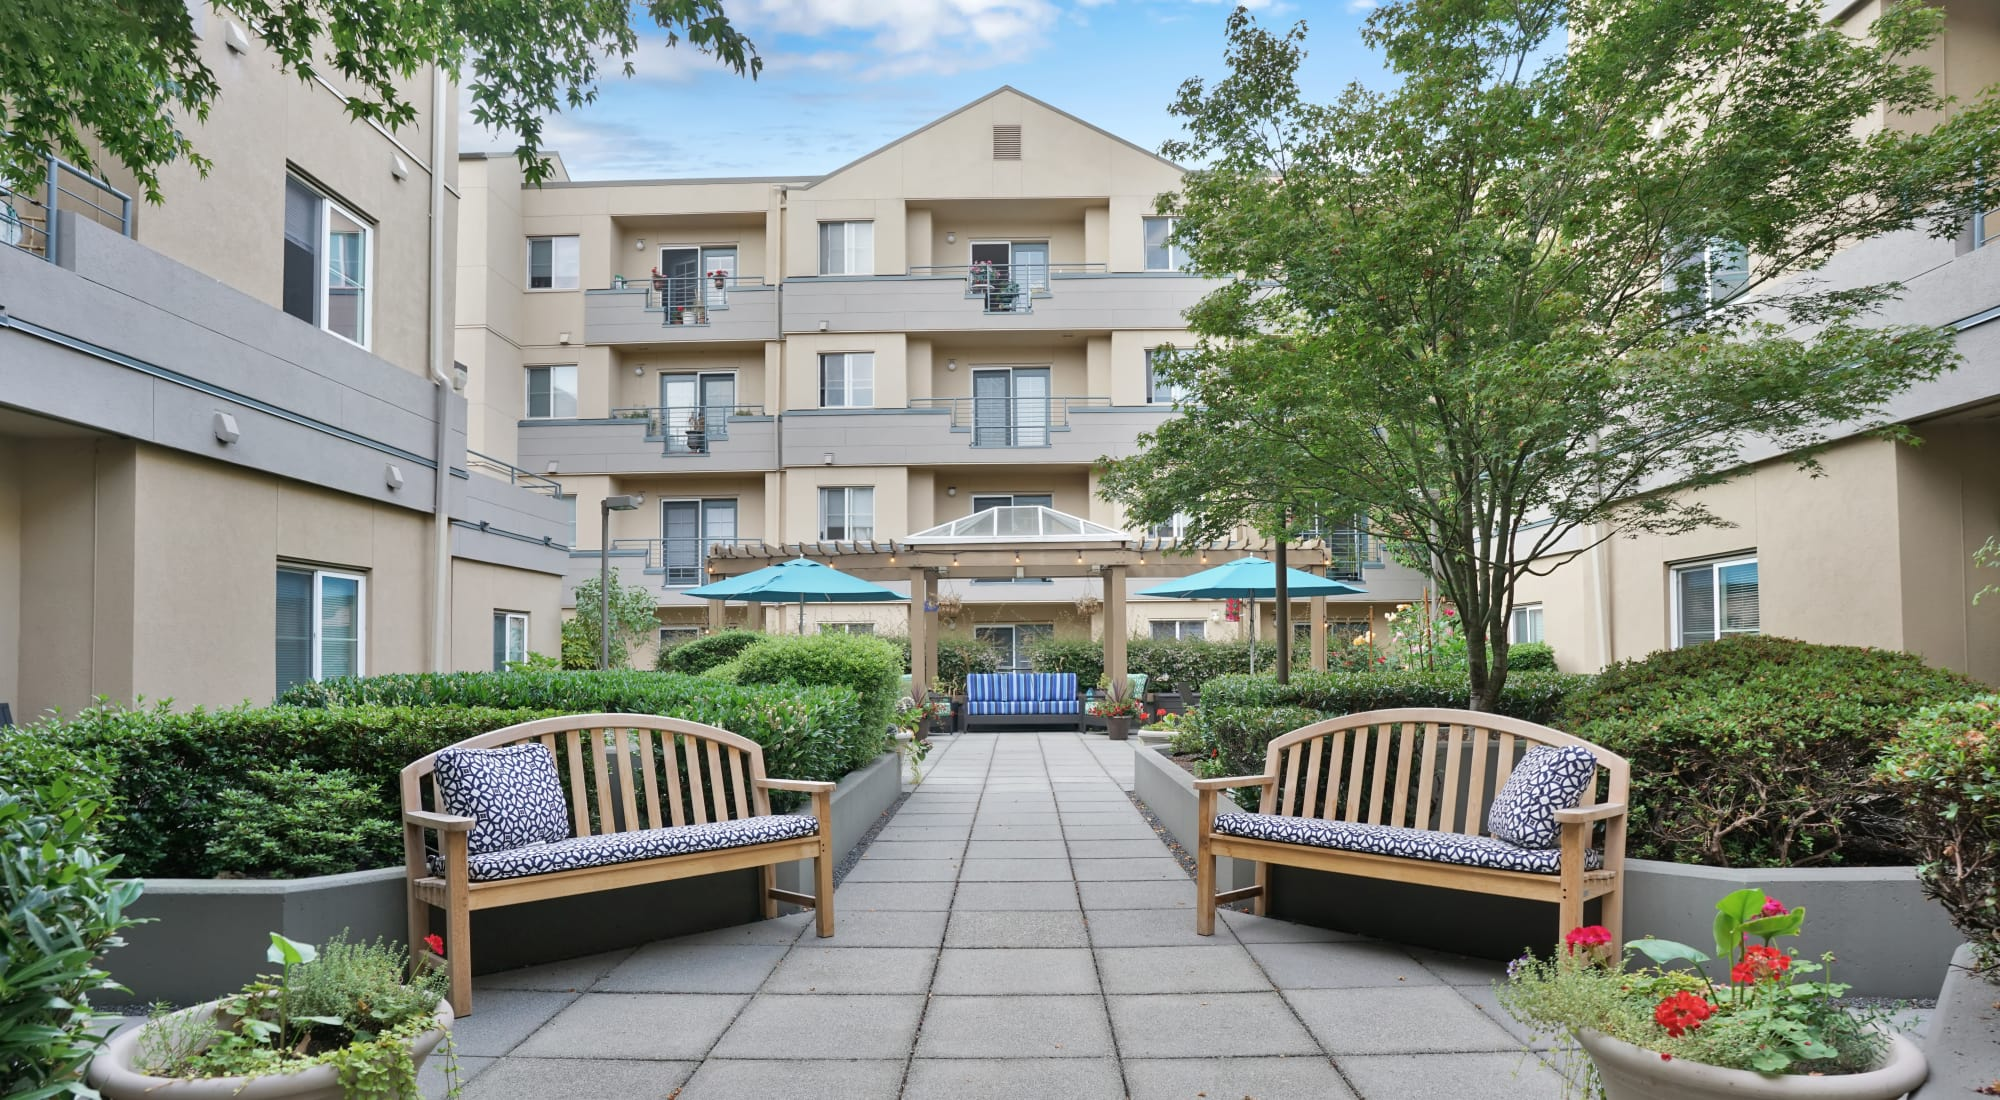 Courtyard at Island House Assisted Living in Mercer Island, Washington